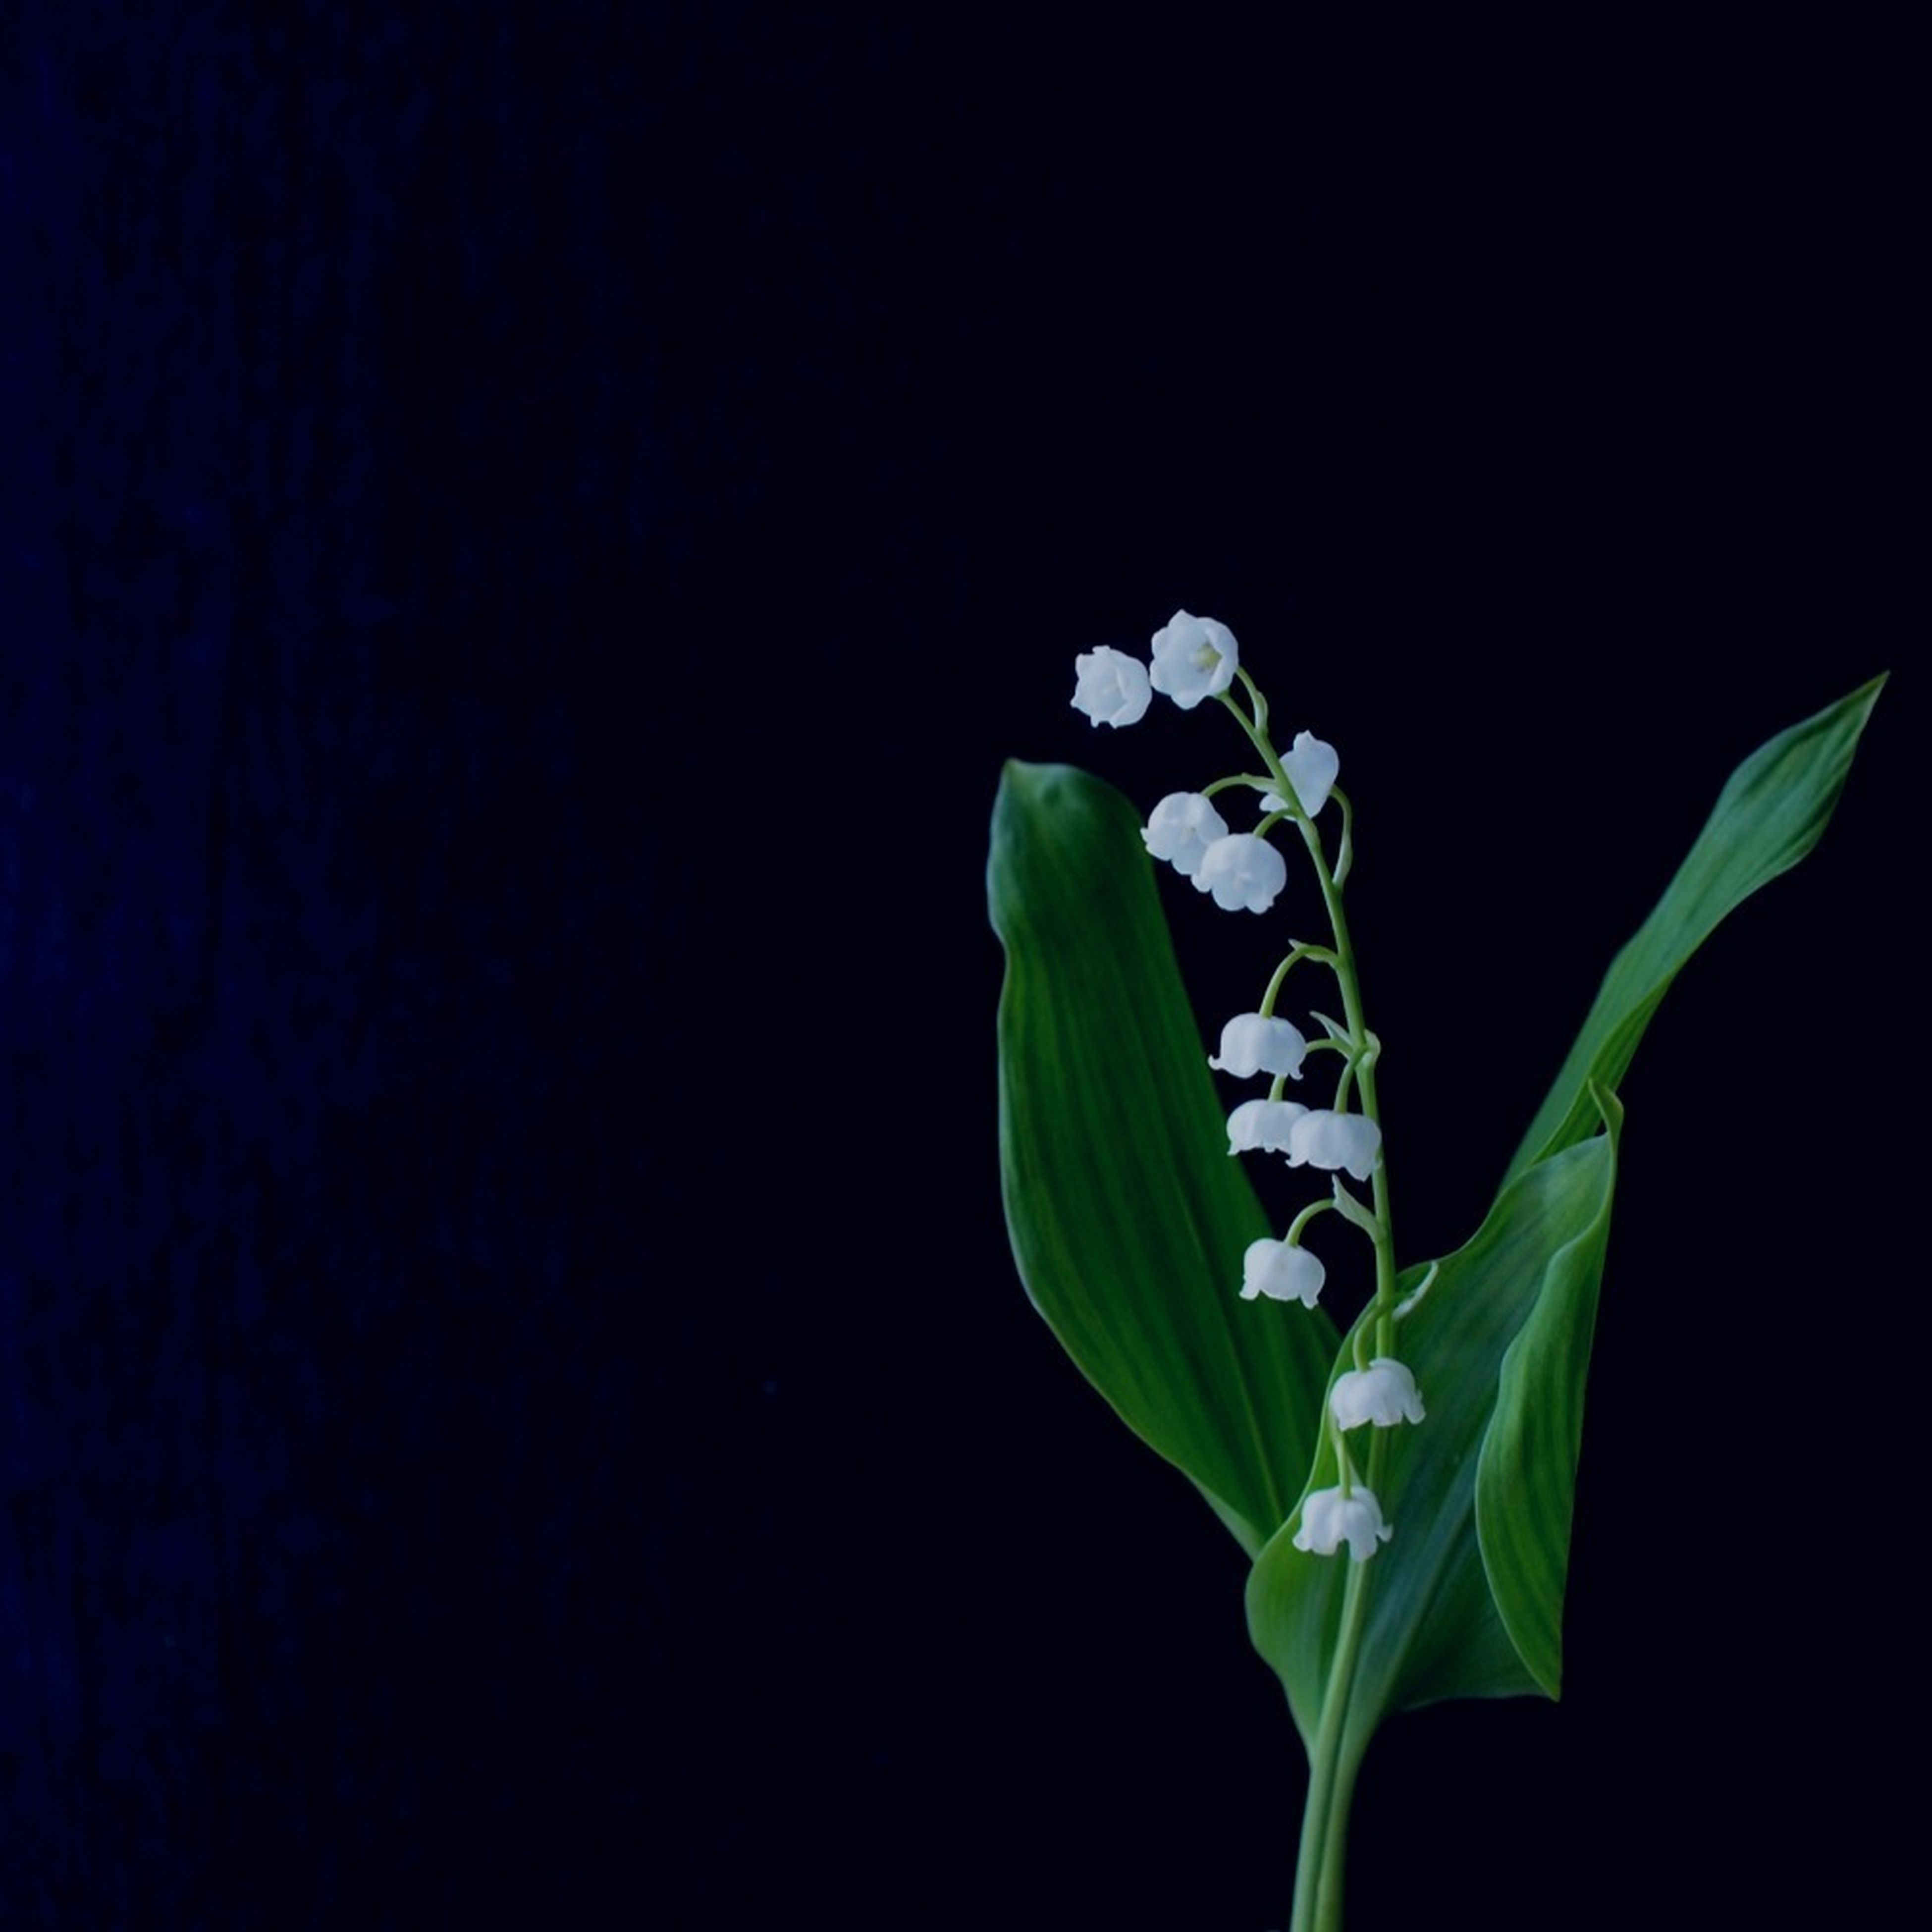 studio shot, leaf, black background, copy space, flower, growth, plant, freshness, stem, fragility, close-up, nature, beauty in nature, petal, green color, bud, no people, cut out, botany, white color